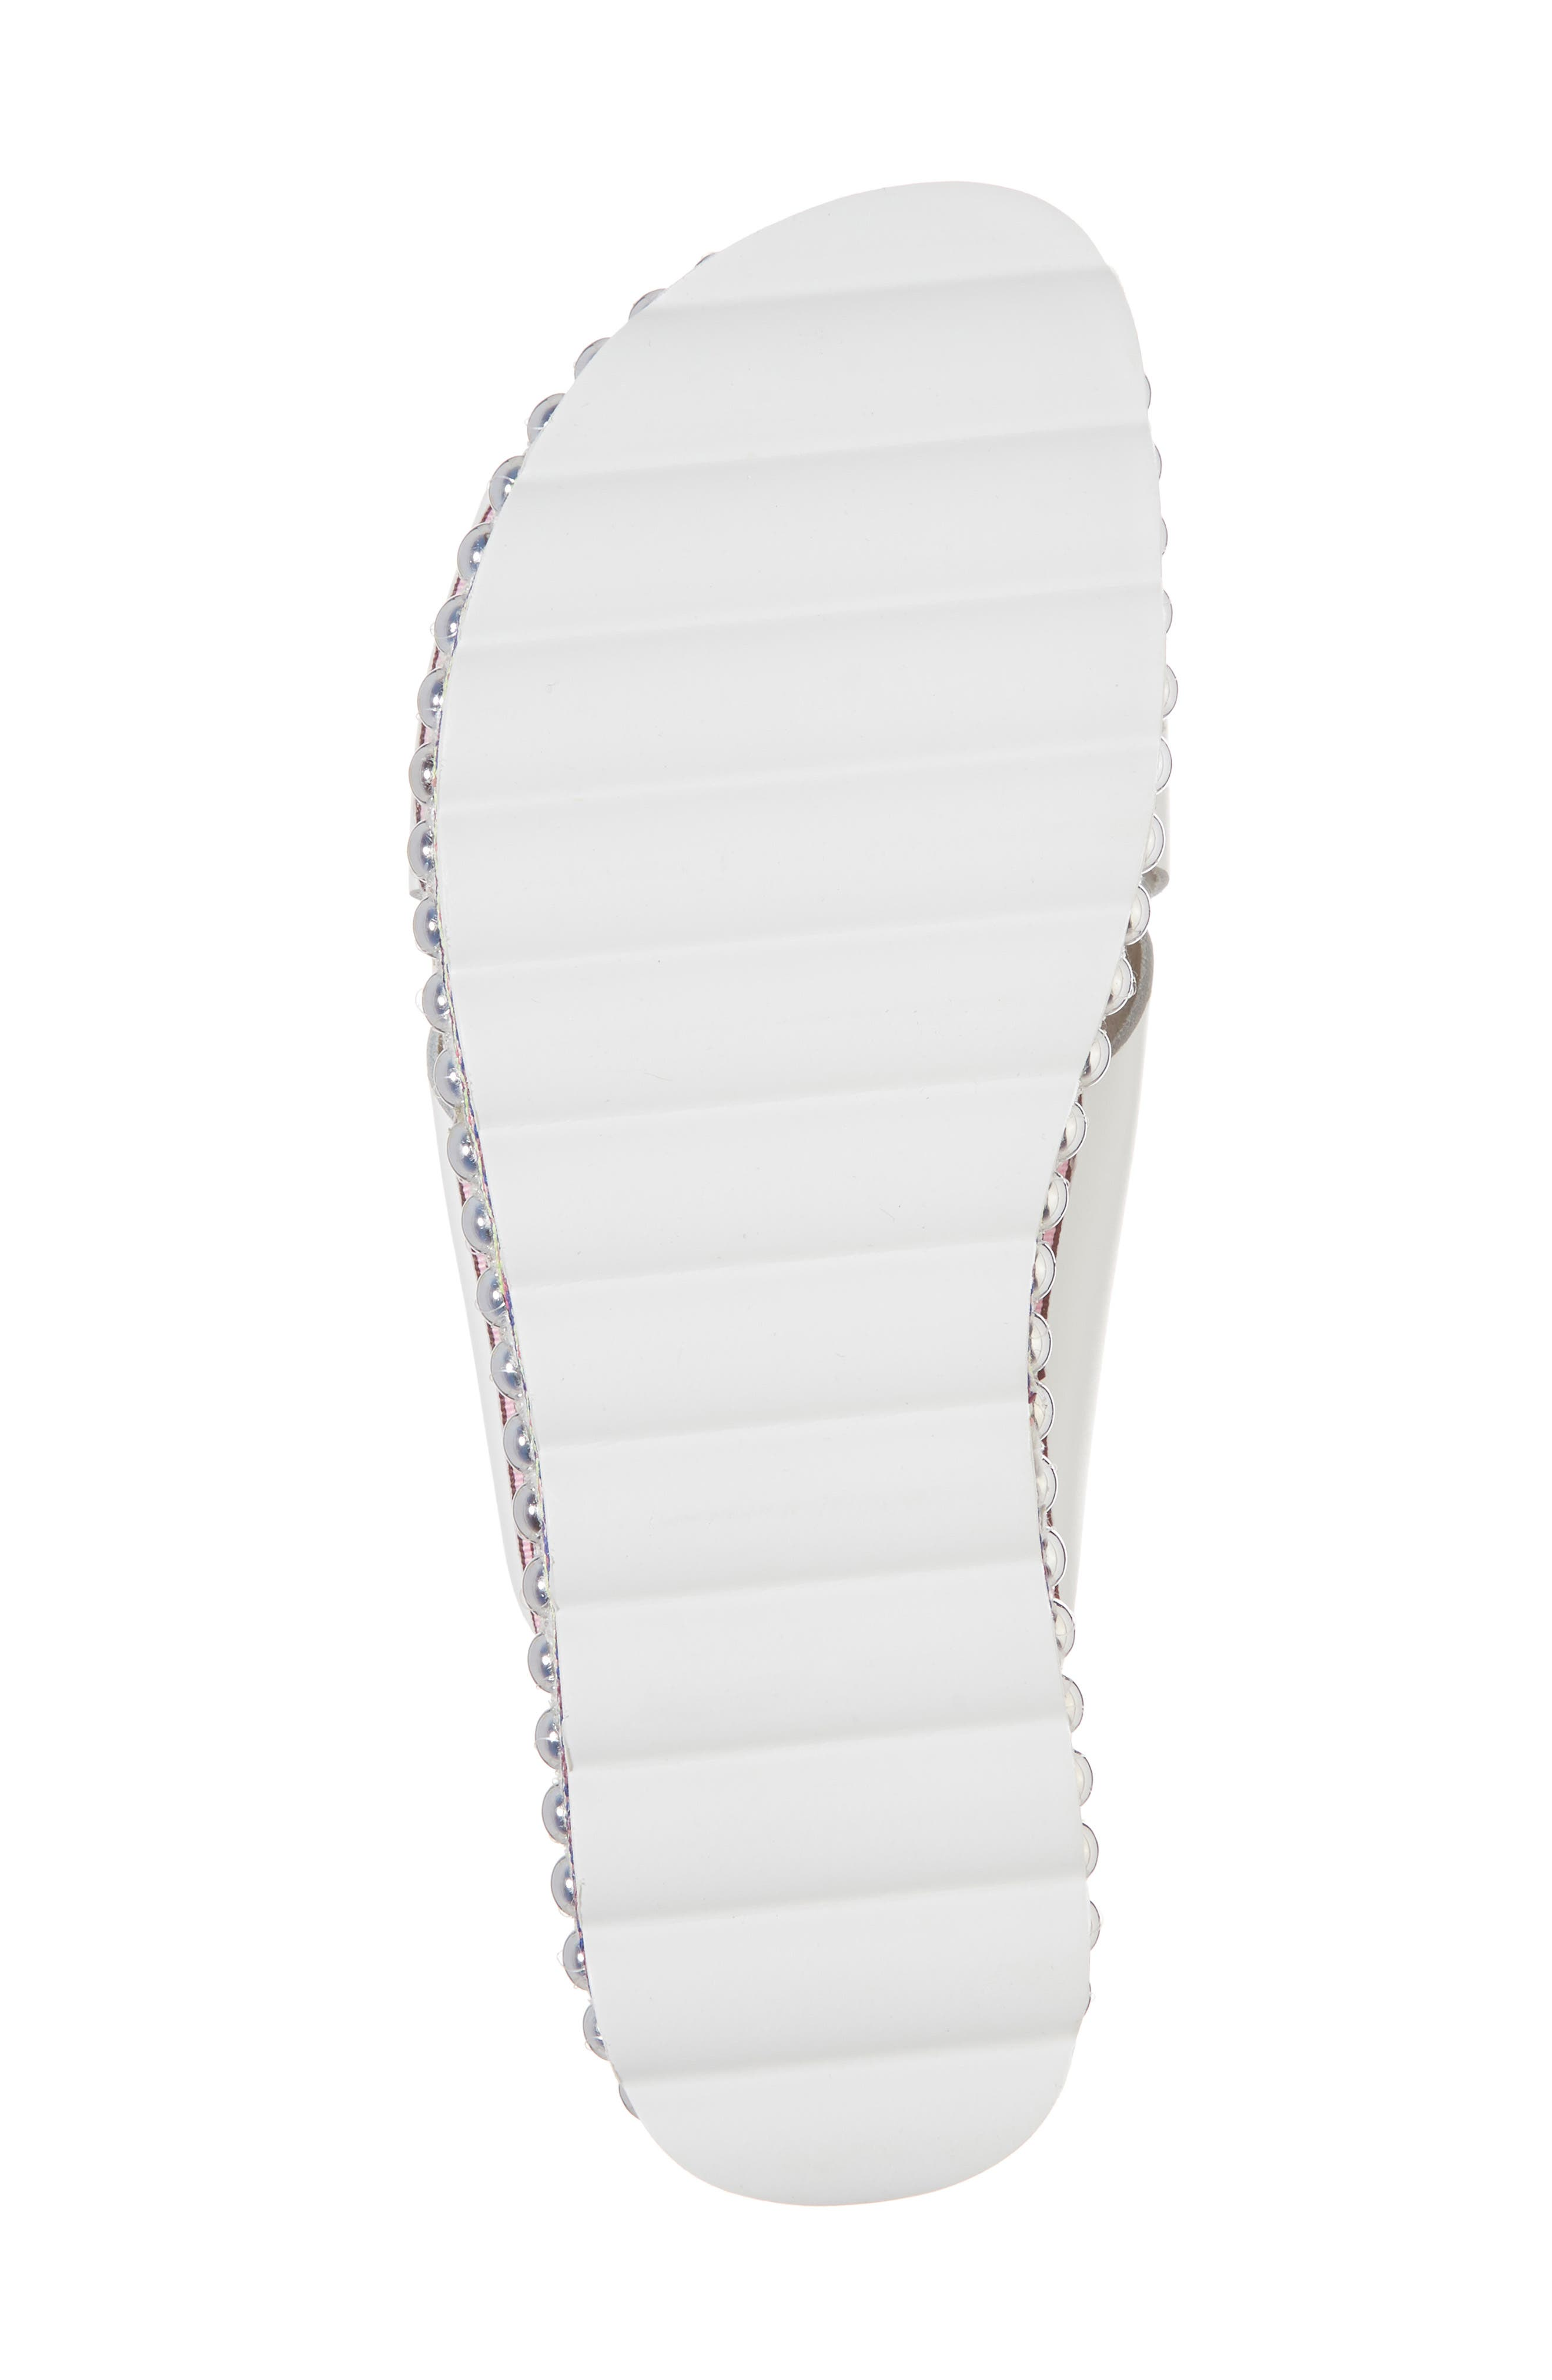 Torri Platform Slide Sandal,                             Alternate thumbnail 6, color,                             WHITE LEATHER